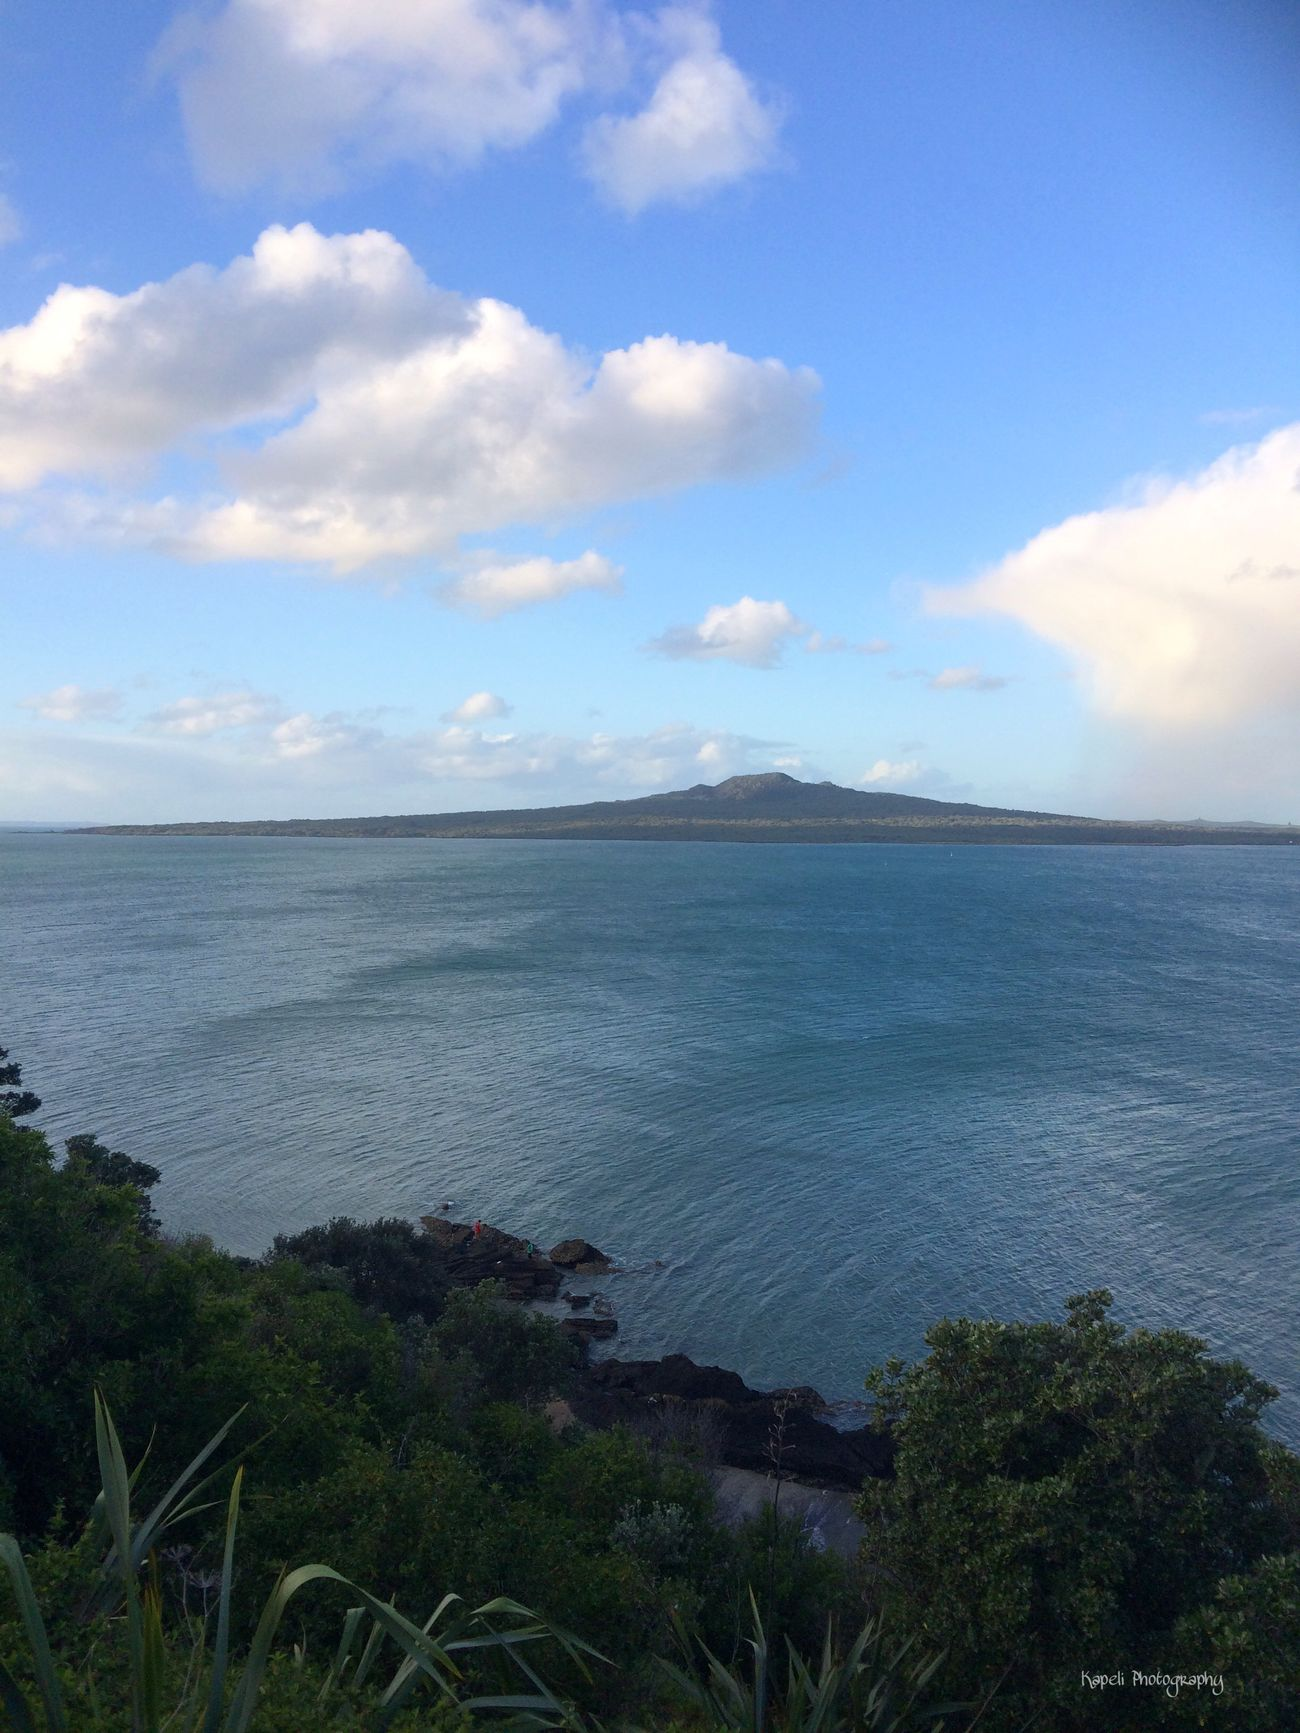 Taken last week. Volcano Rangitoto Island Scenic Scenic View EyeEm Nature Lover Nature EyeEm Best Shots Eye4photography  IPhoneography